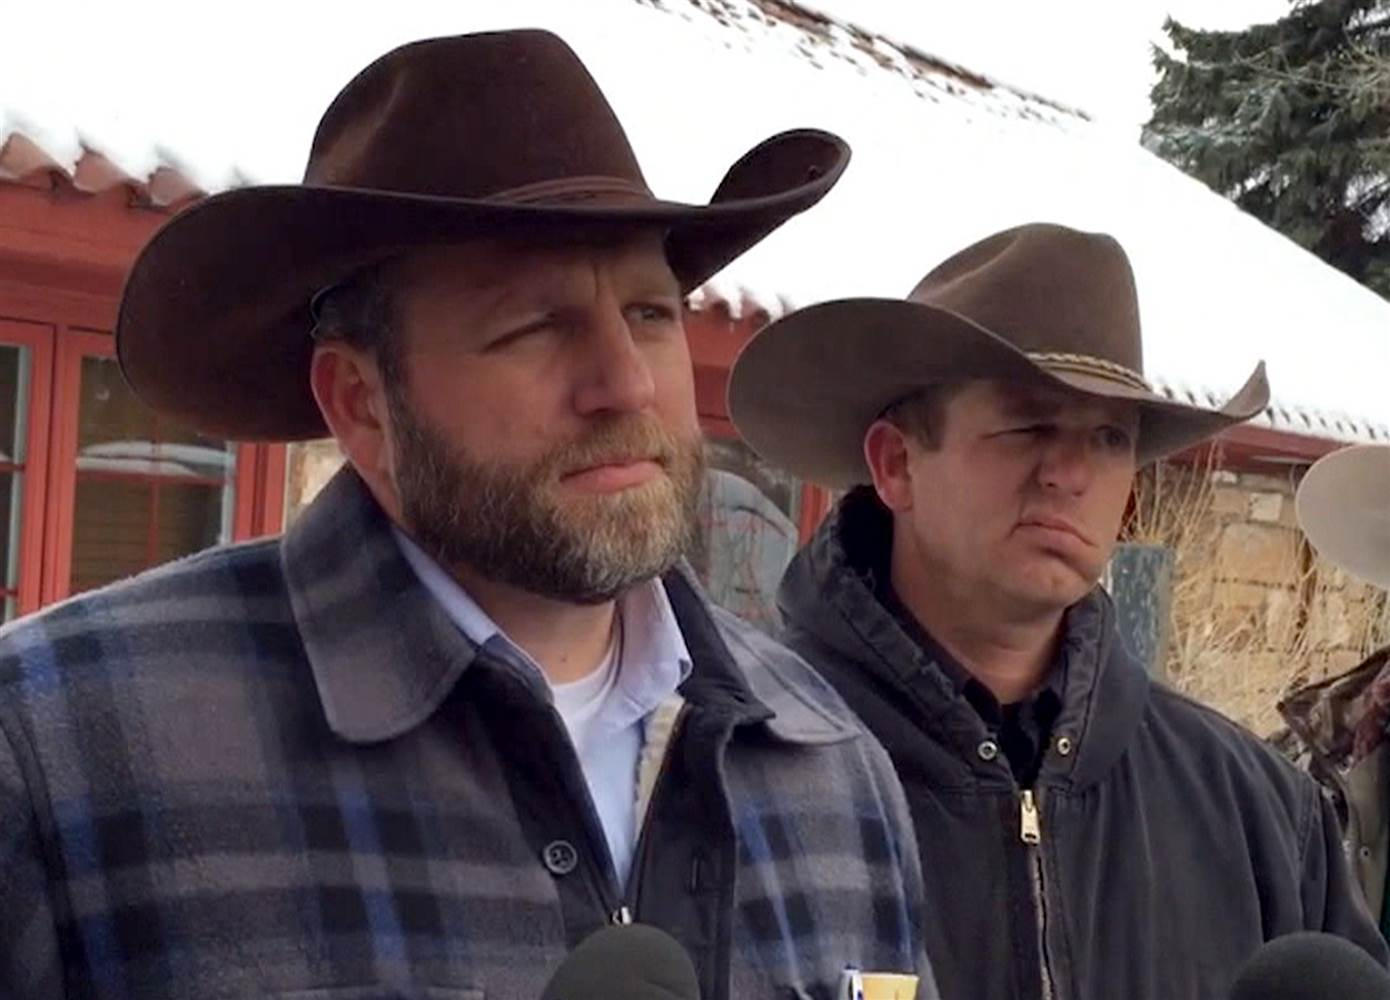 160104-ammon-ryan-bundy-jsw-717a_fdf46b5b9c0cbb504ccc25520dad928d.nbcnews-ux-2880-1000